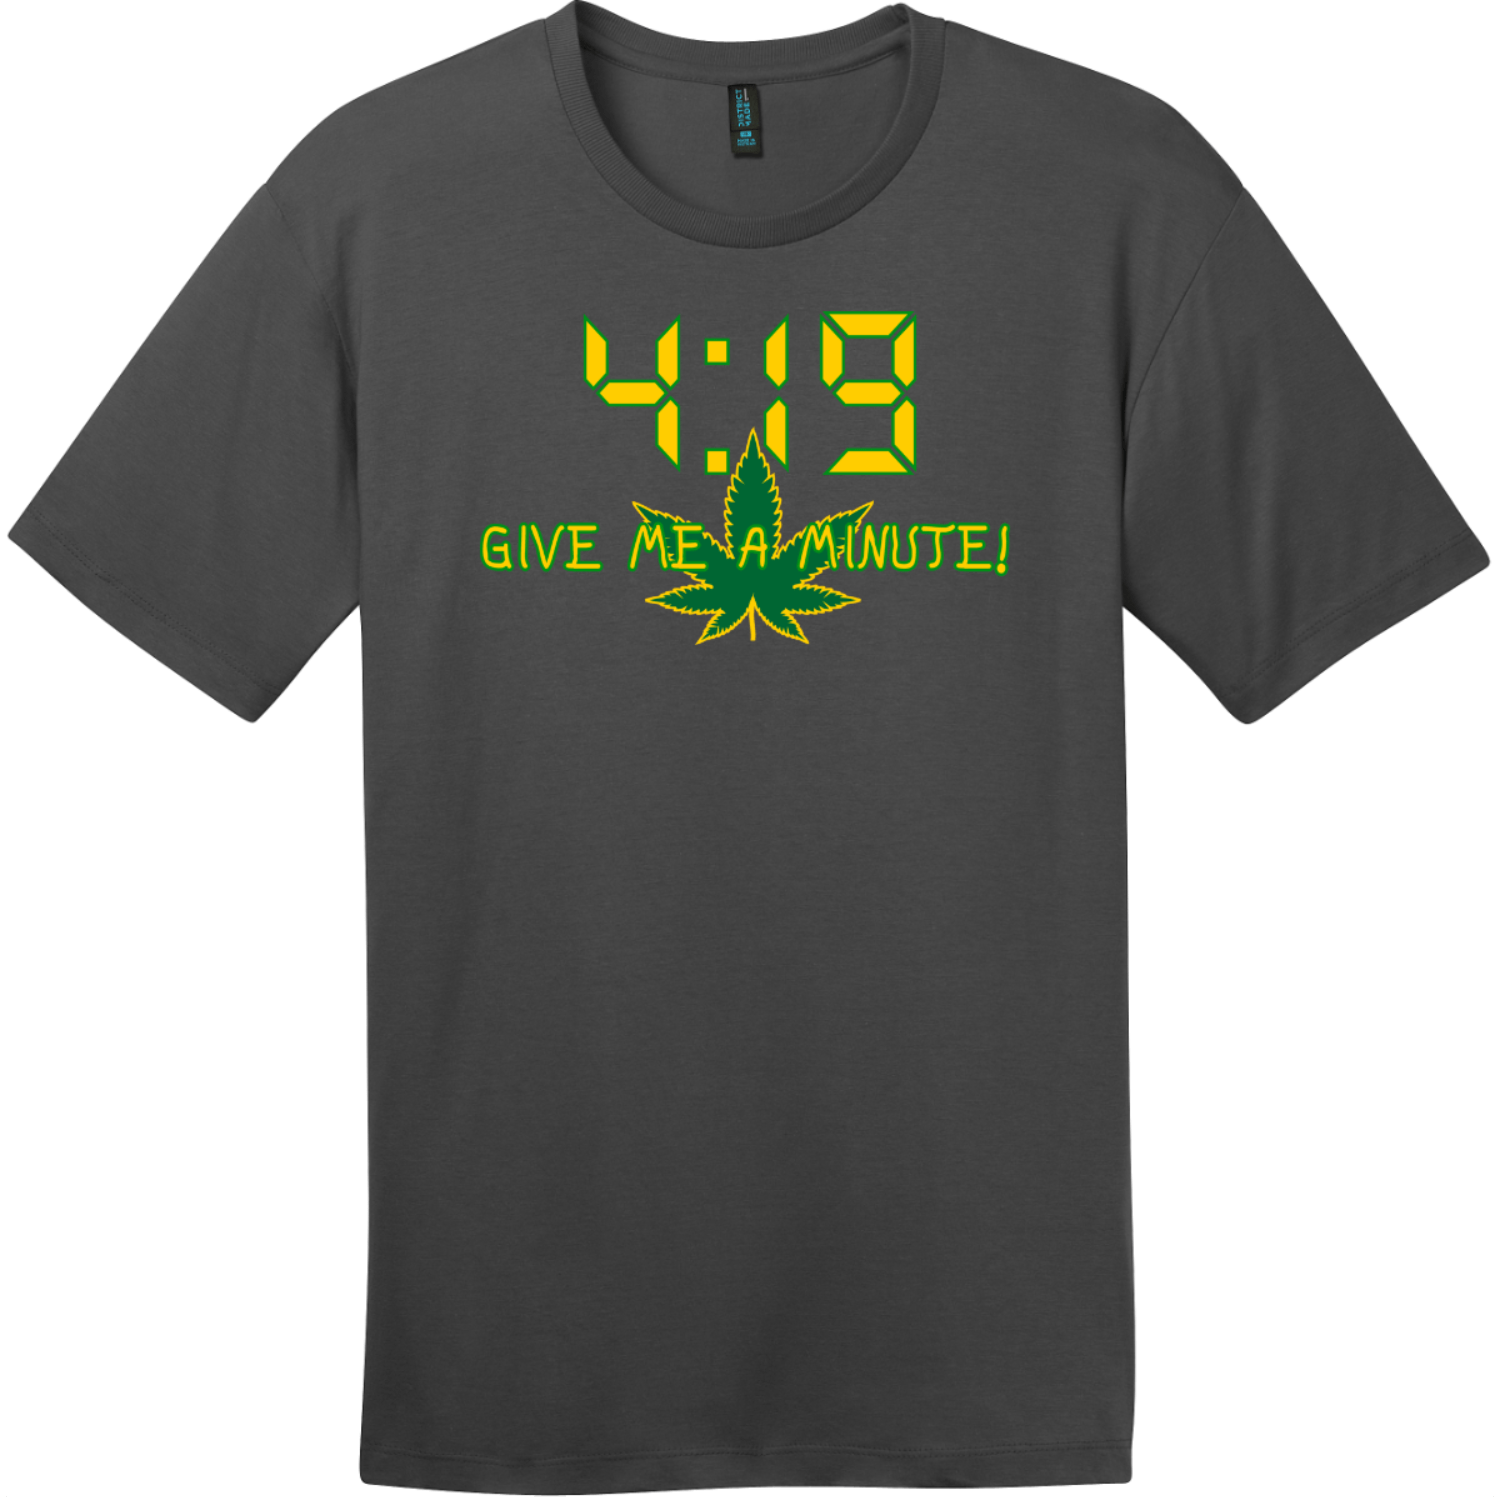 4:19 Give Me A Minute T-Shirt Charcoal District Perfect Weight Tee DT104